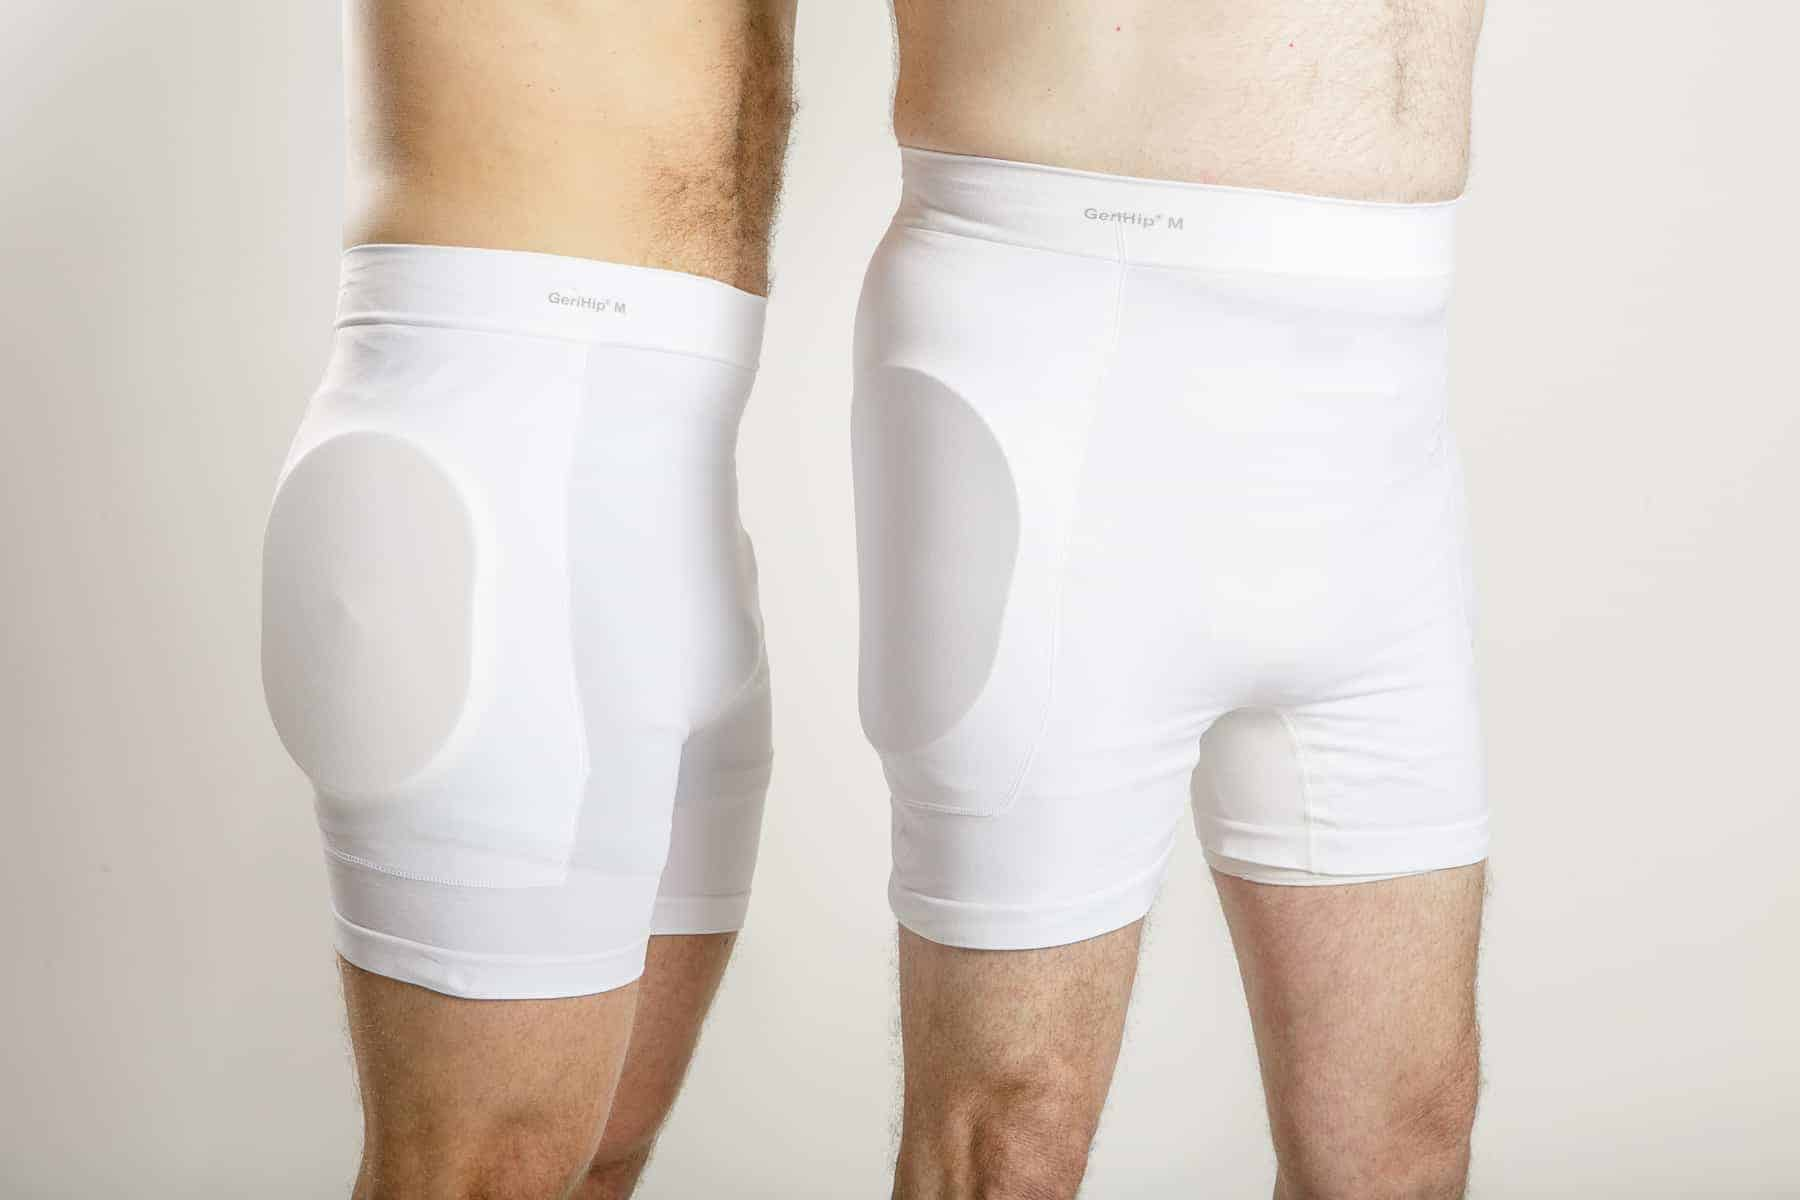 The Original GeriHip® Hip Protector Set